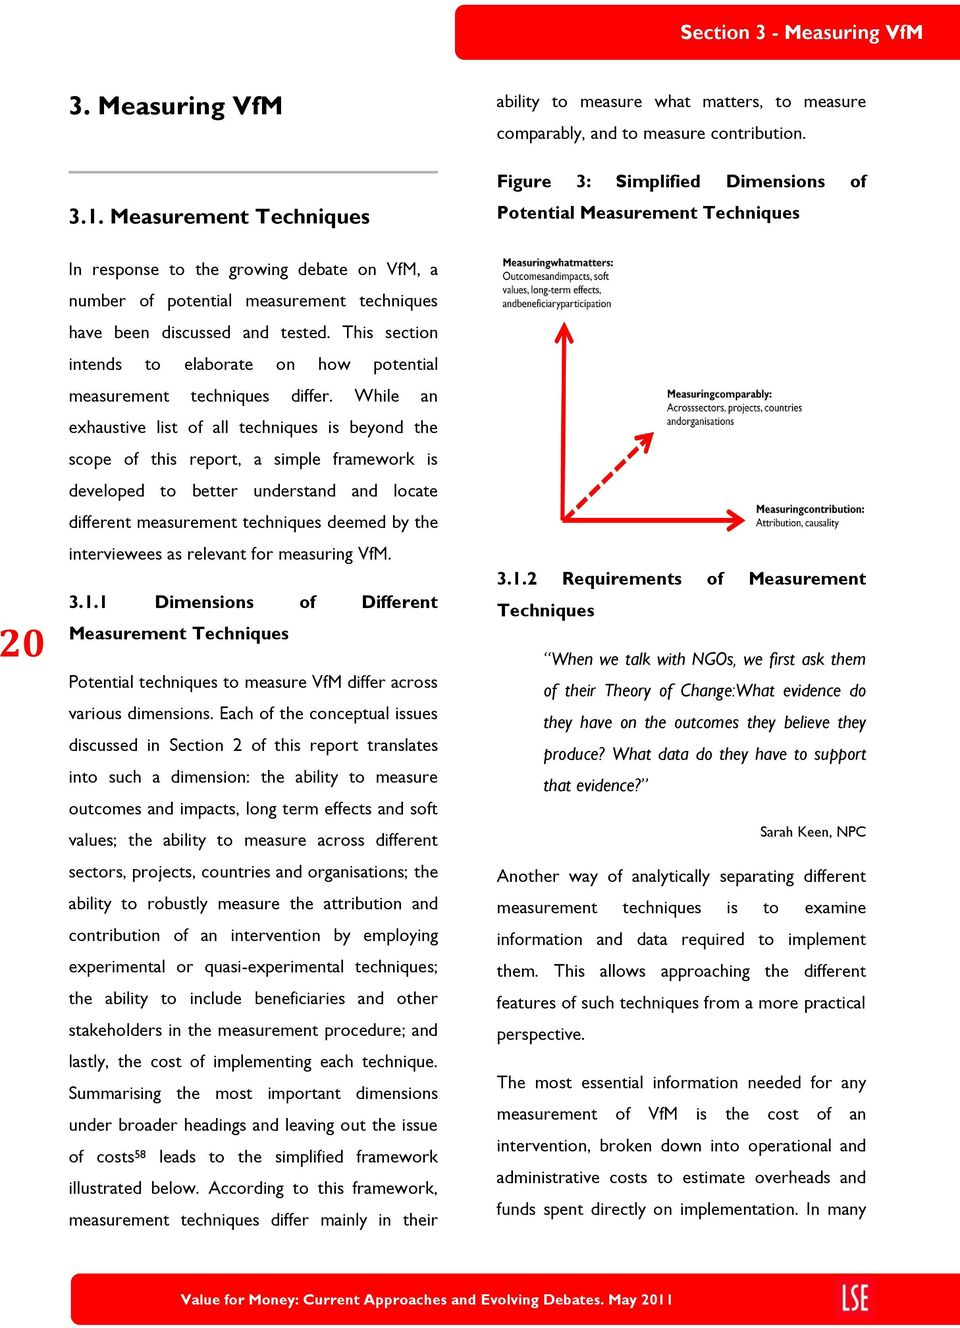 While an exhaustive list of all techniques is beyond the scope of this report, a simple framework is developed to better understand and locate different measurement techniques deemed by the